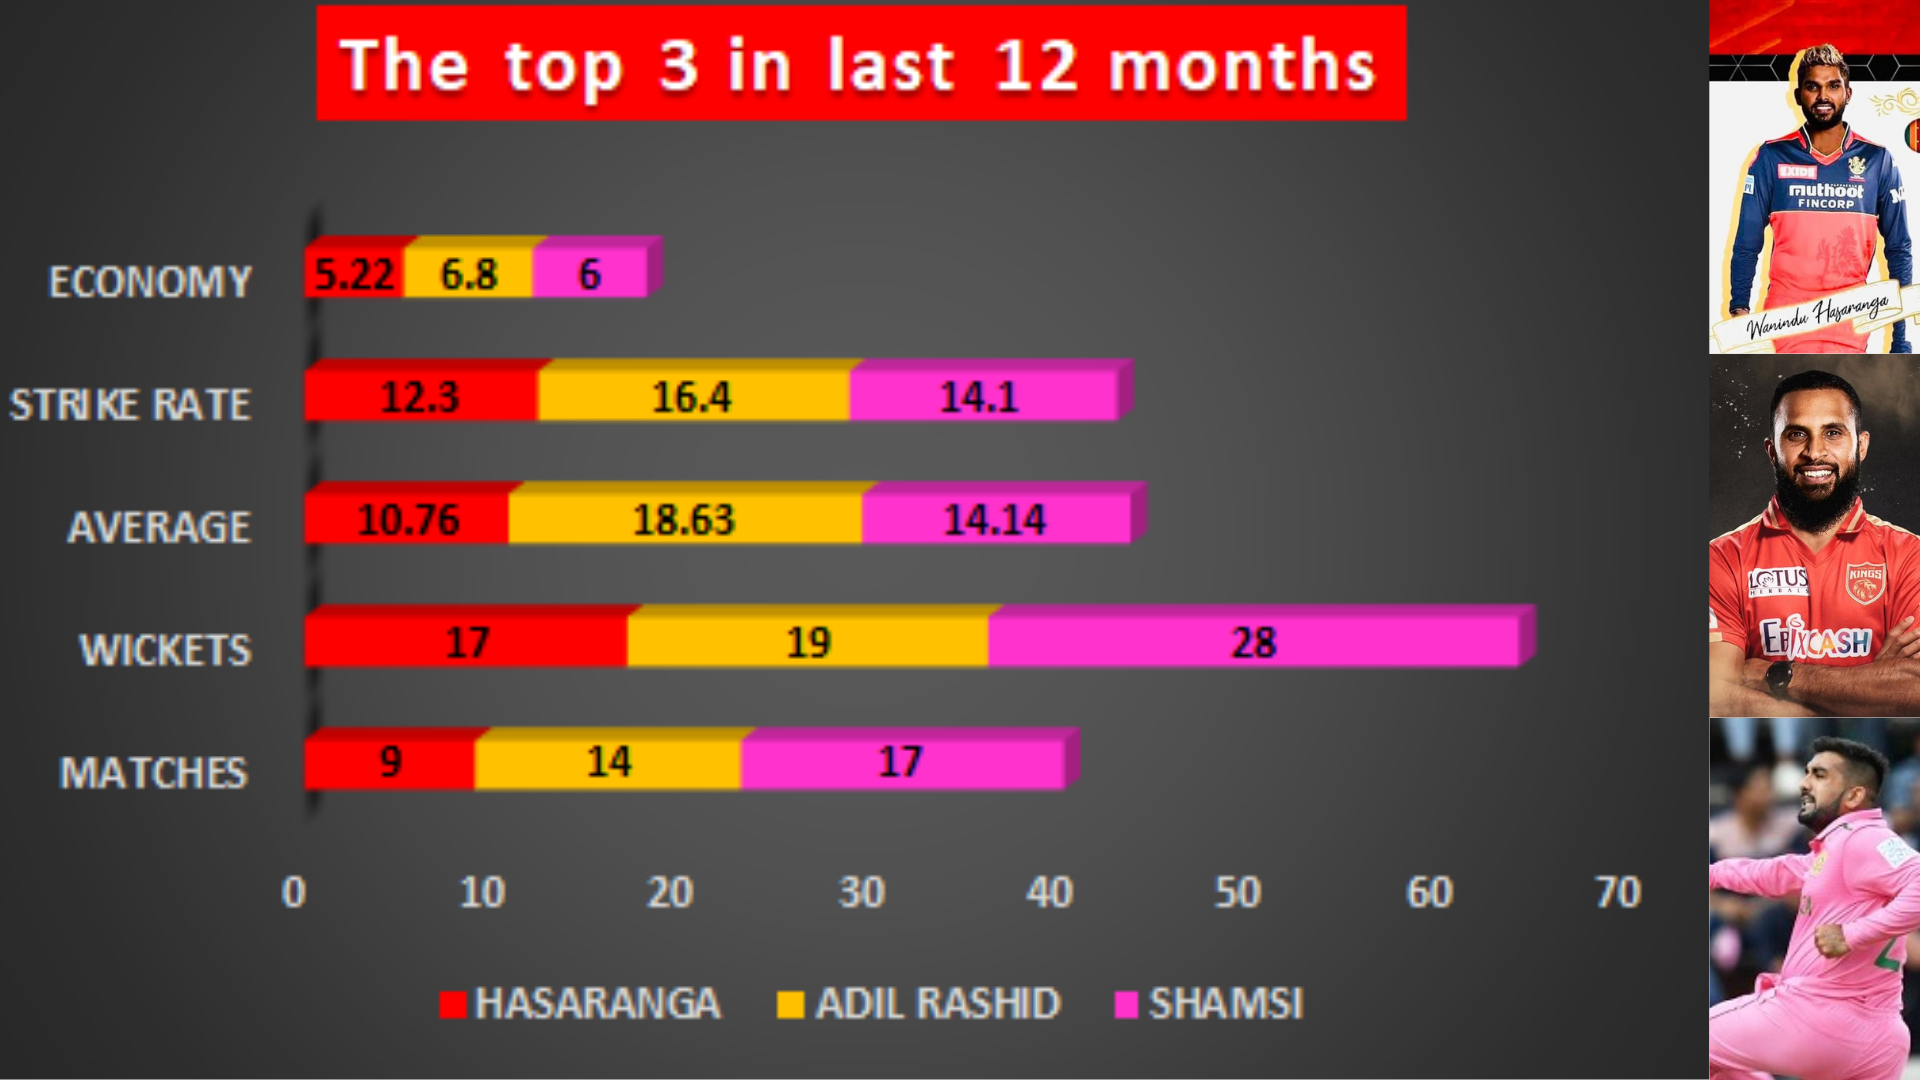 Top 3 replacements performance in last 12 months in International T20's